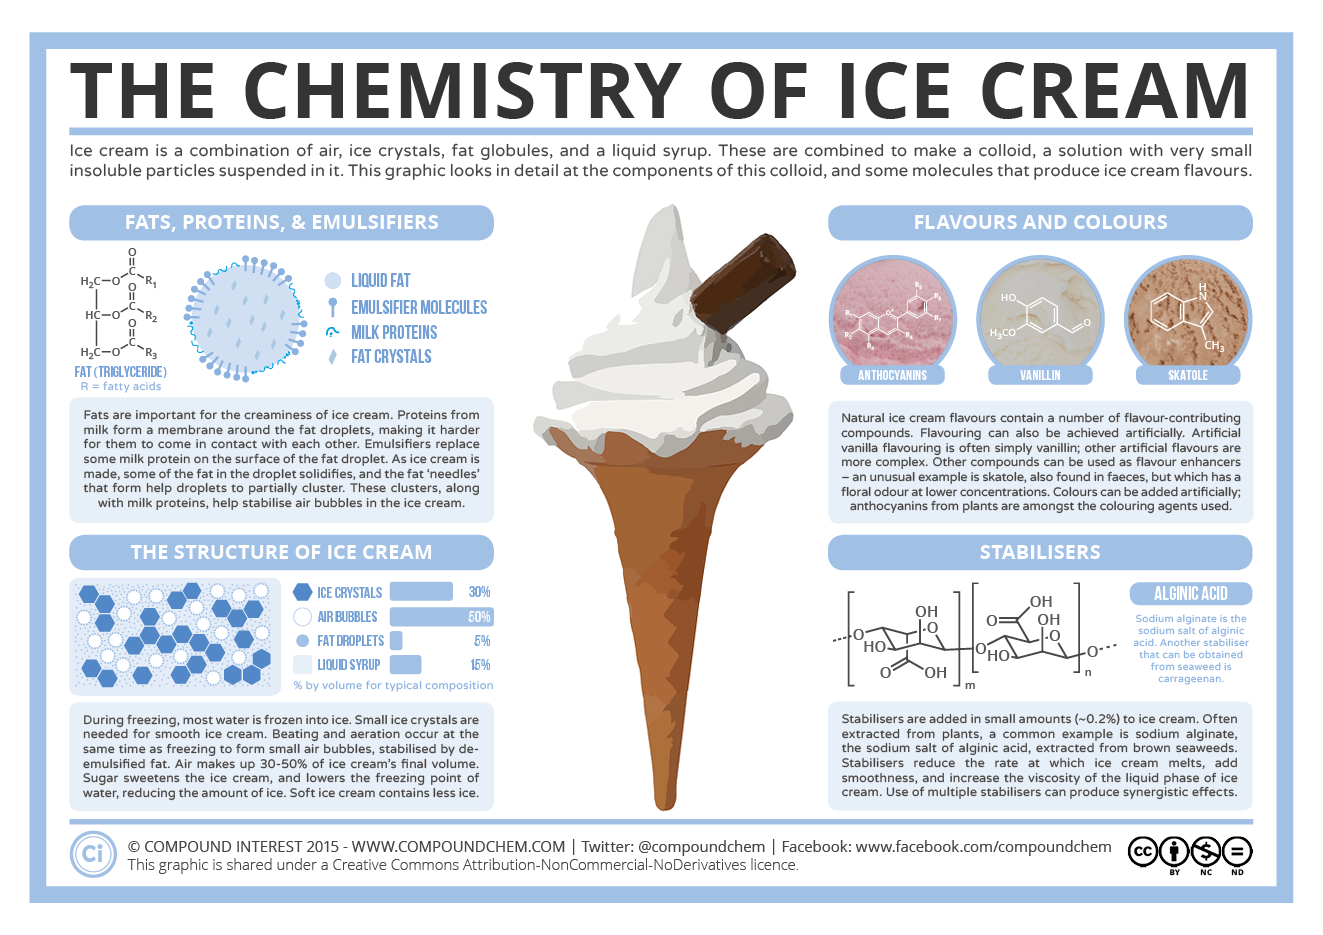 The chemistry of ice cream the chemistry of ice cream full screen1 ccuart Choice Image